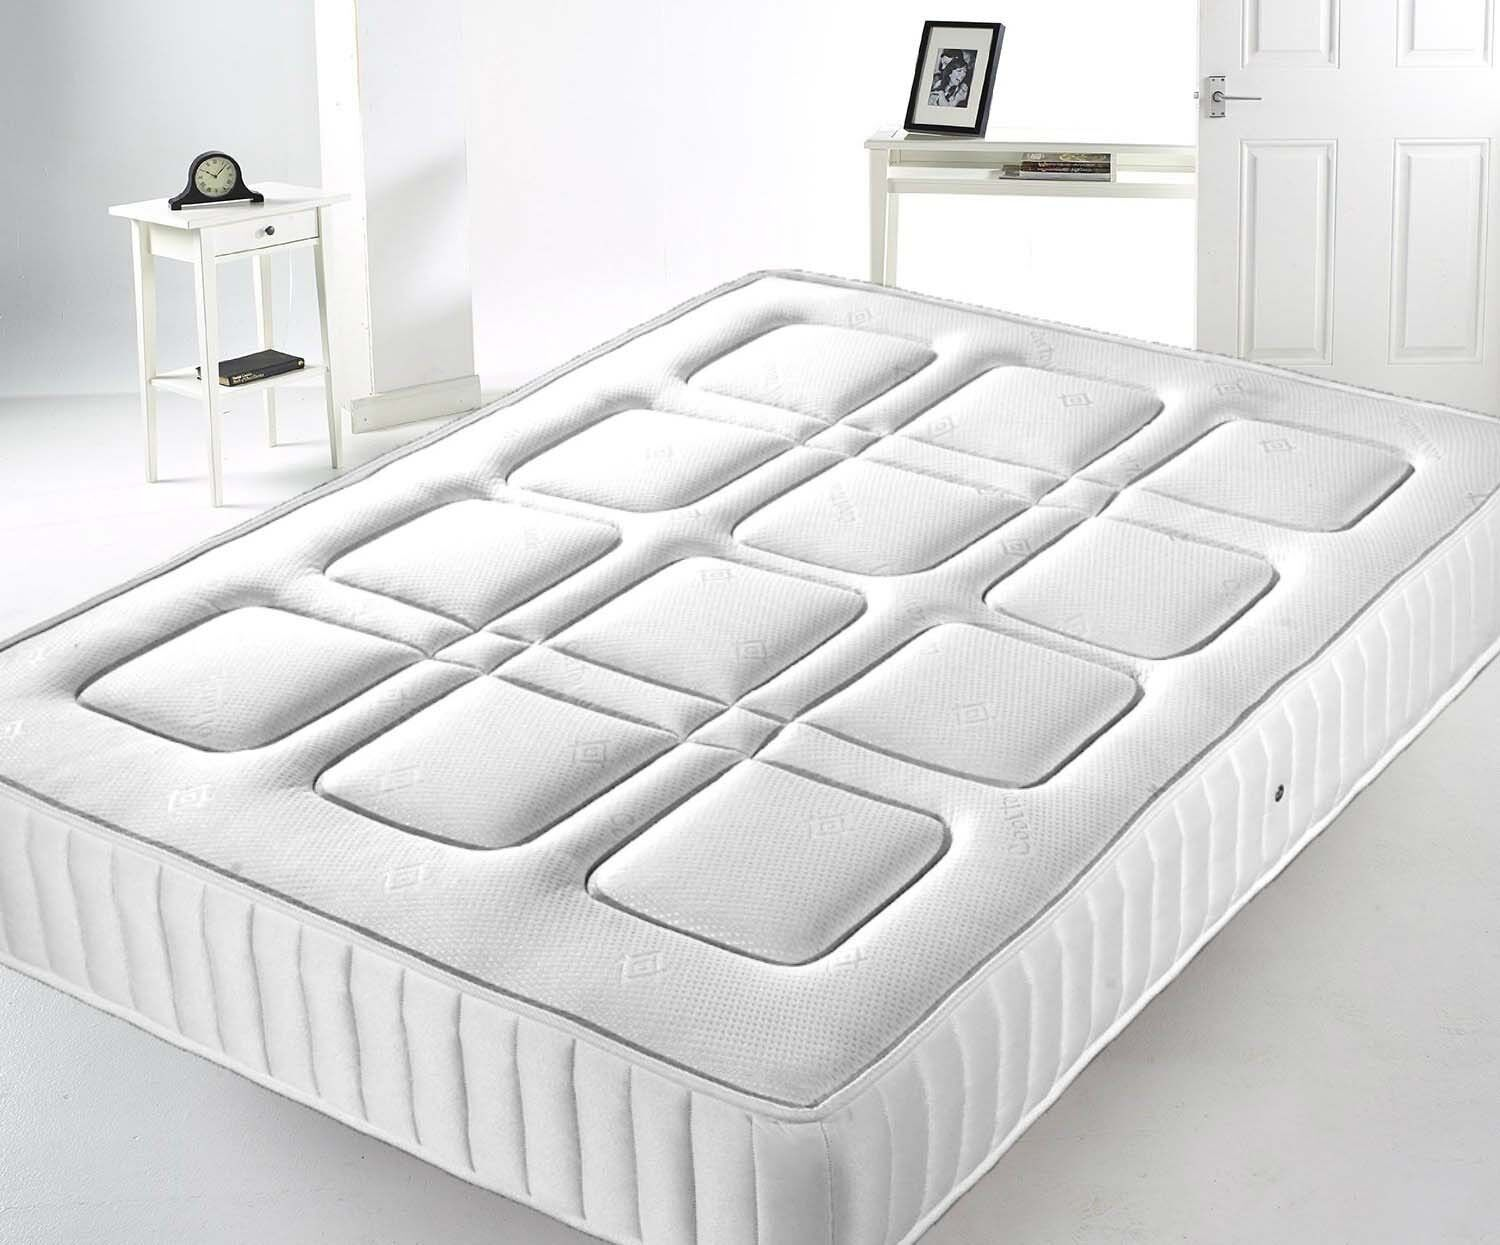 new sprung mattress 3ft 4ft 39 6 5ft memory foam topped. Black Bedroom Furniture Sets. Home Design Ideas